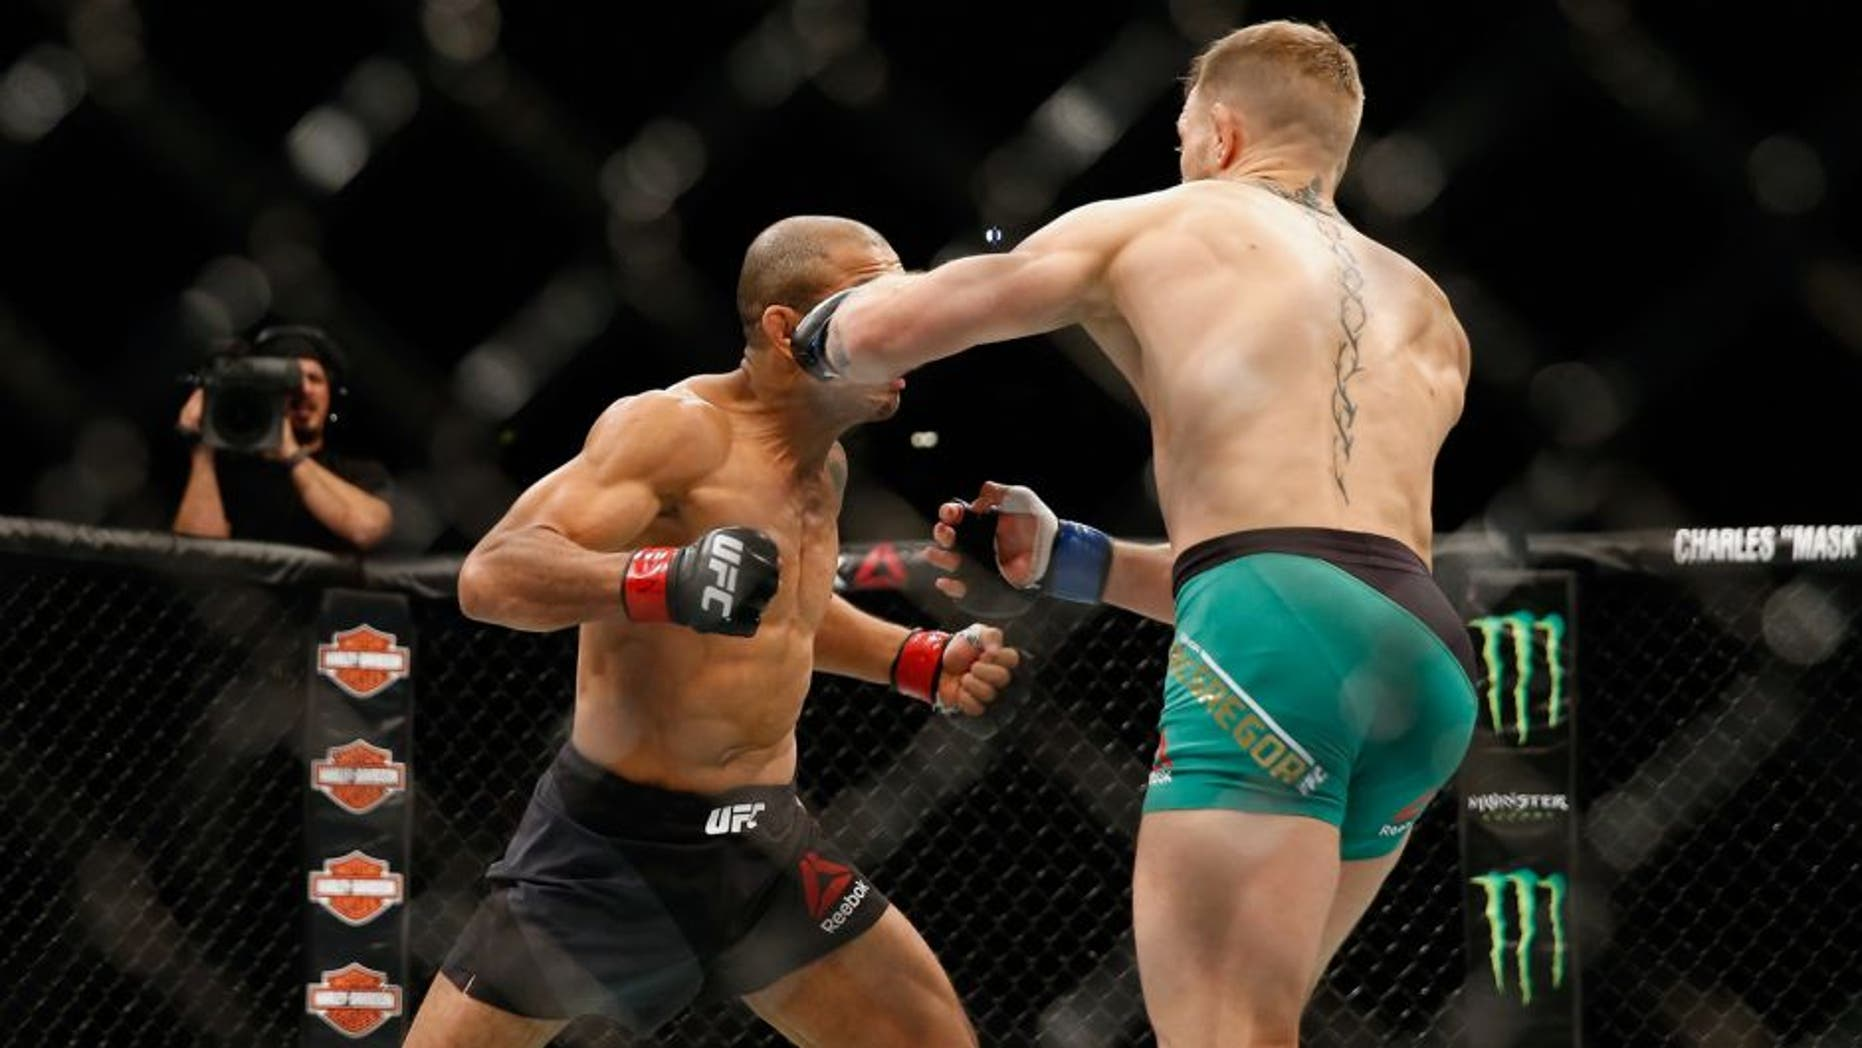 LAS VEGAS, NV - DECEMBER 12: (R-L) Conor McGregor of Ireland punches Jose Aldo of Brazil in their UFC welterweight championship bout during the UFC 194 event inside MGM Grand Garden Arena on December 12, 2015 in Las Vegas, Nevada. (Photo by Christian Petersen/Zuffa LLC/Zuffa LLC via Getty Images)